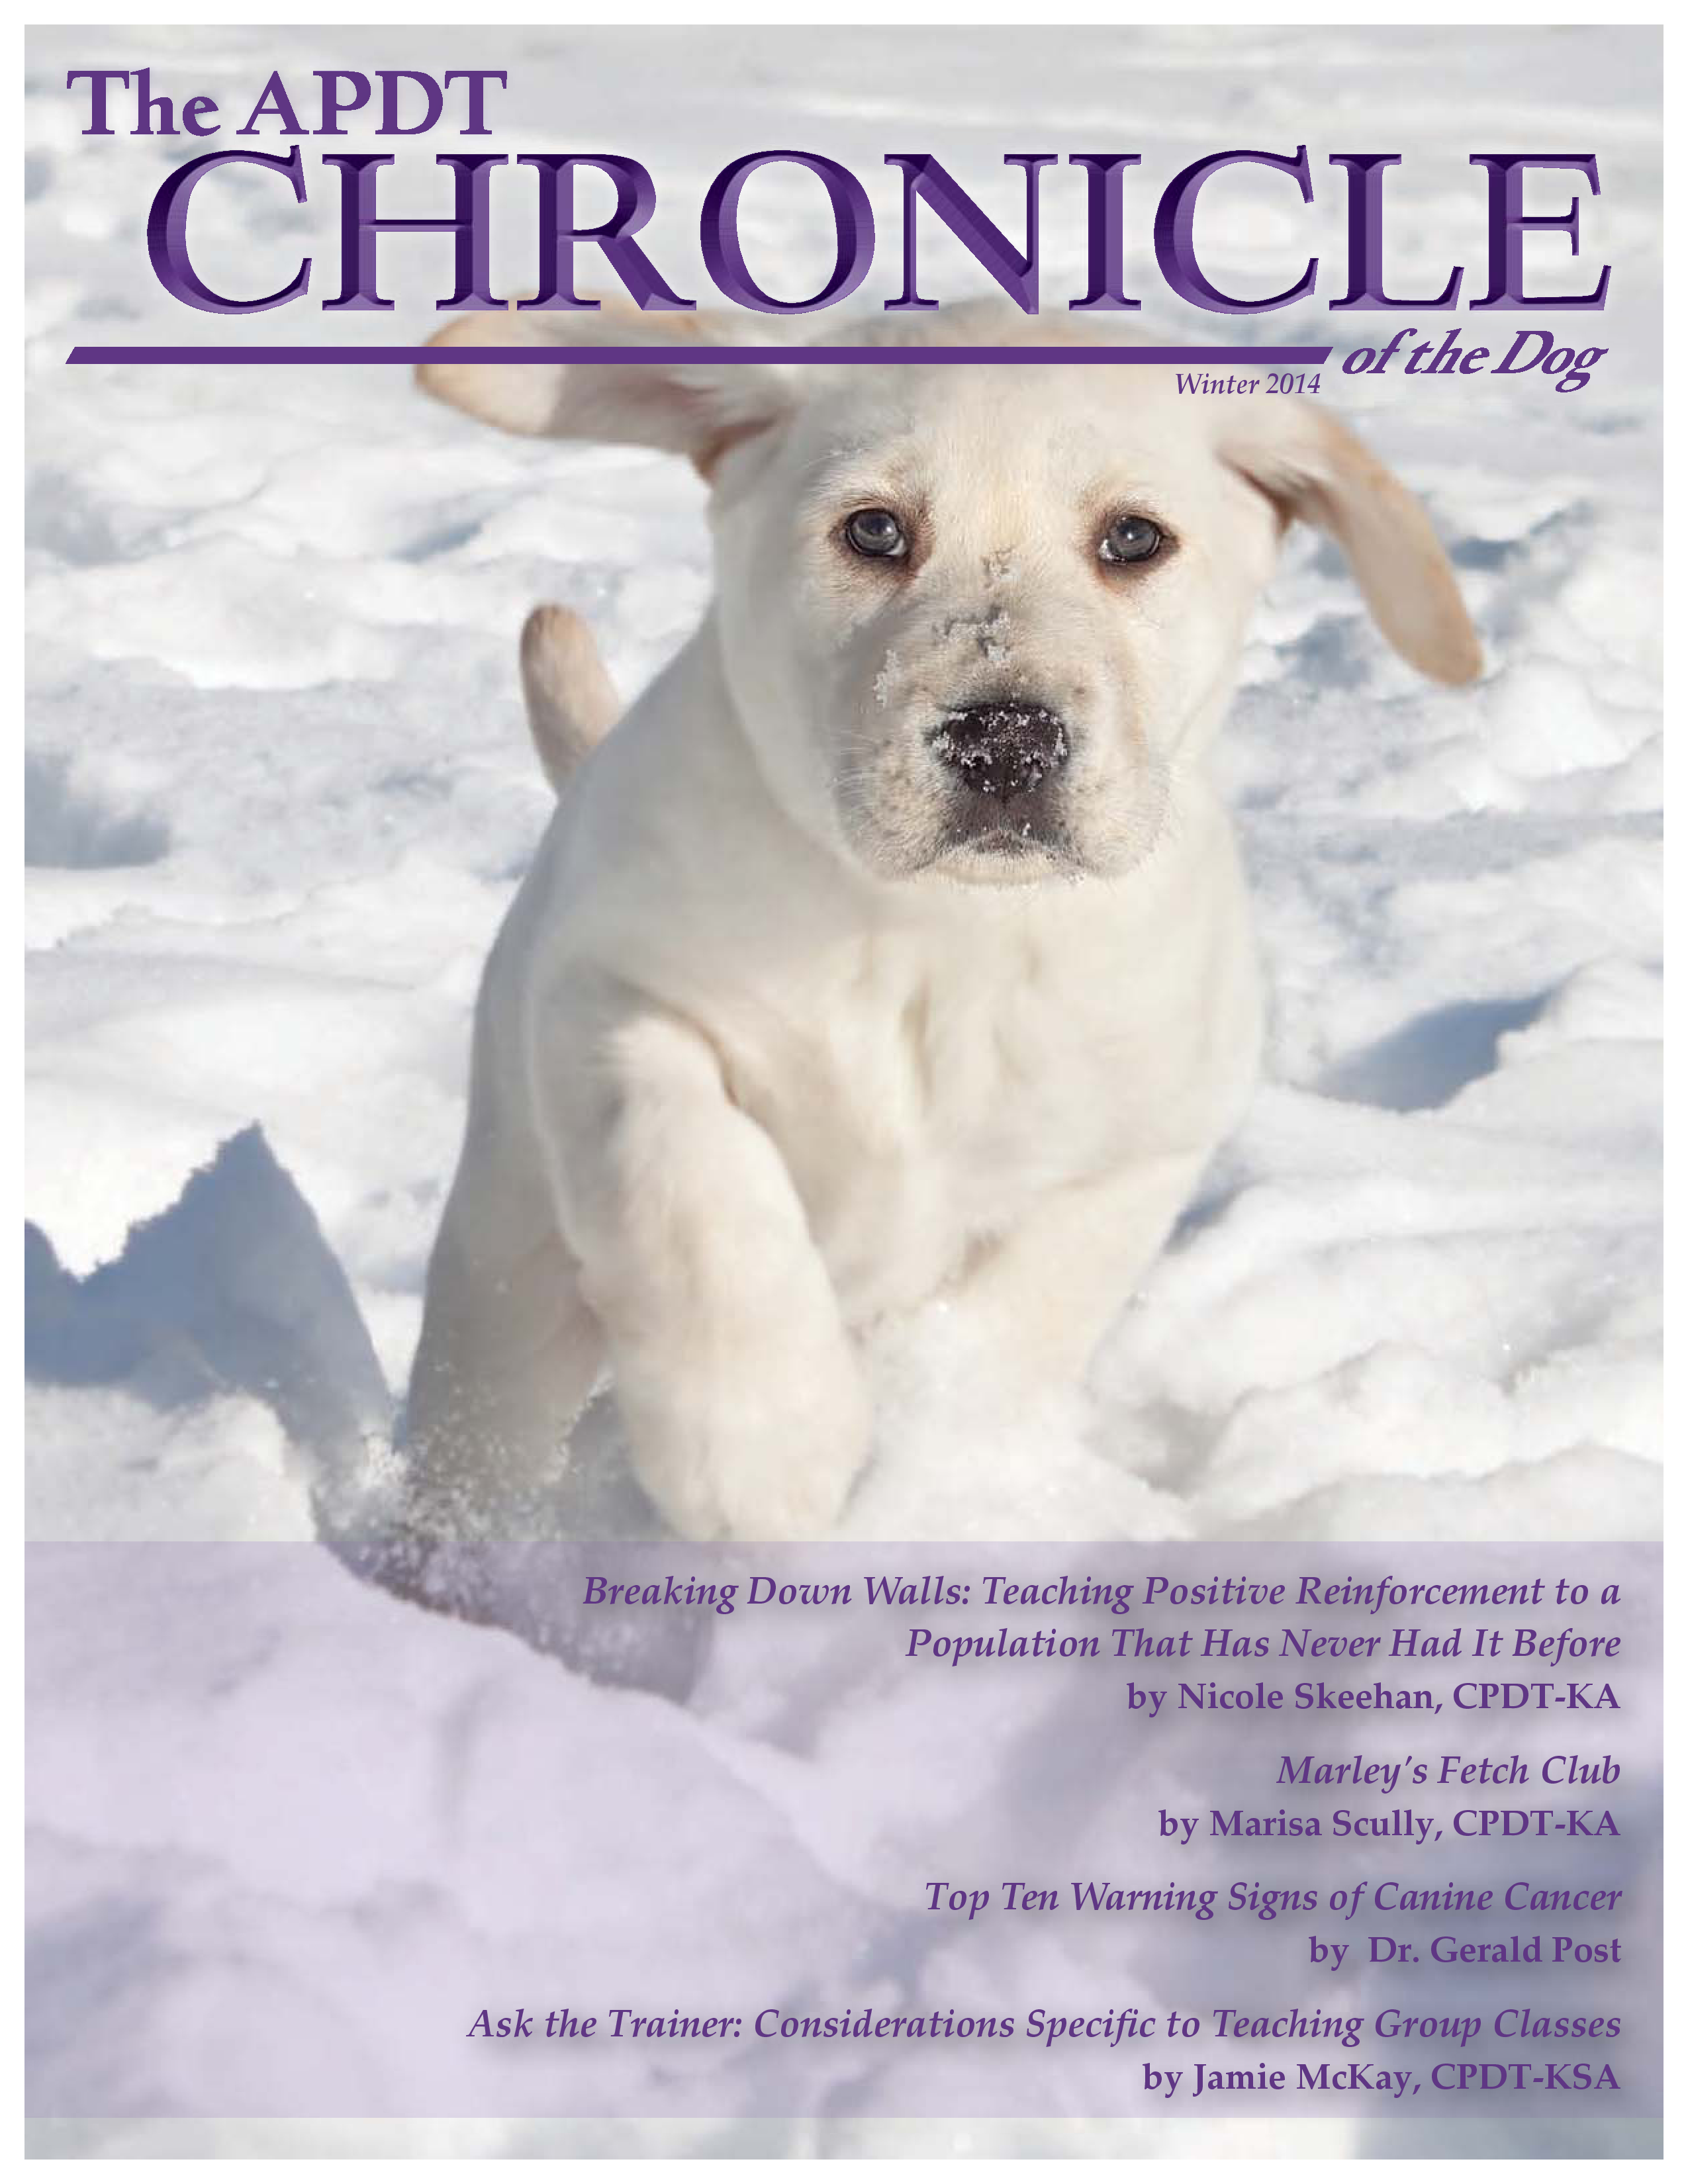 We were so excited to be asked to write for APDT's Chronicle of the Dog!